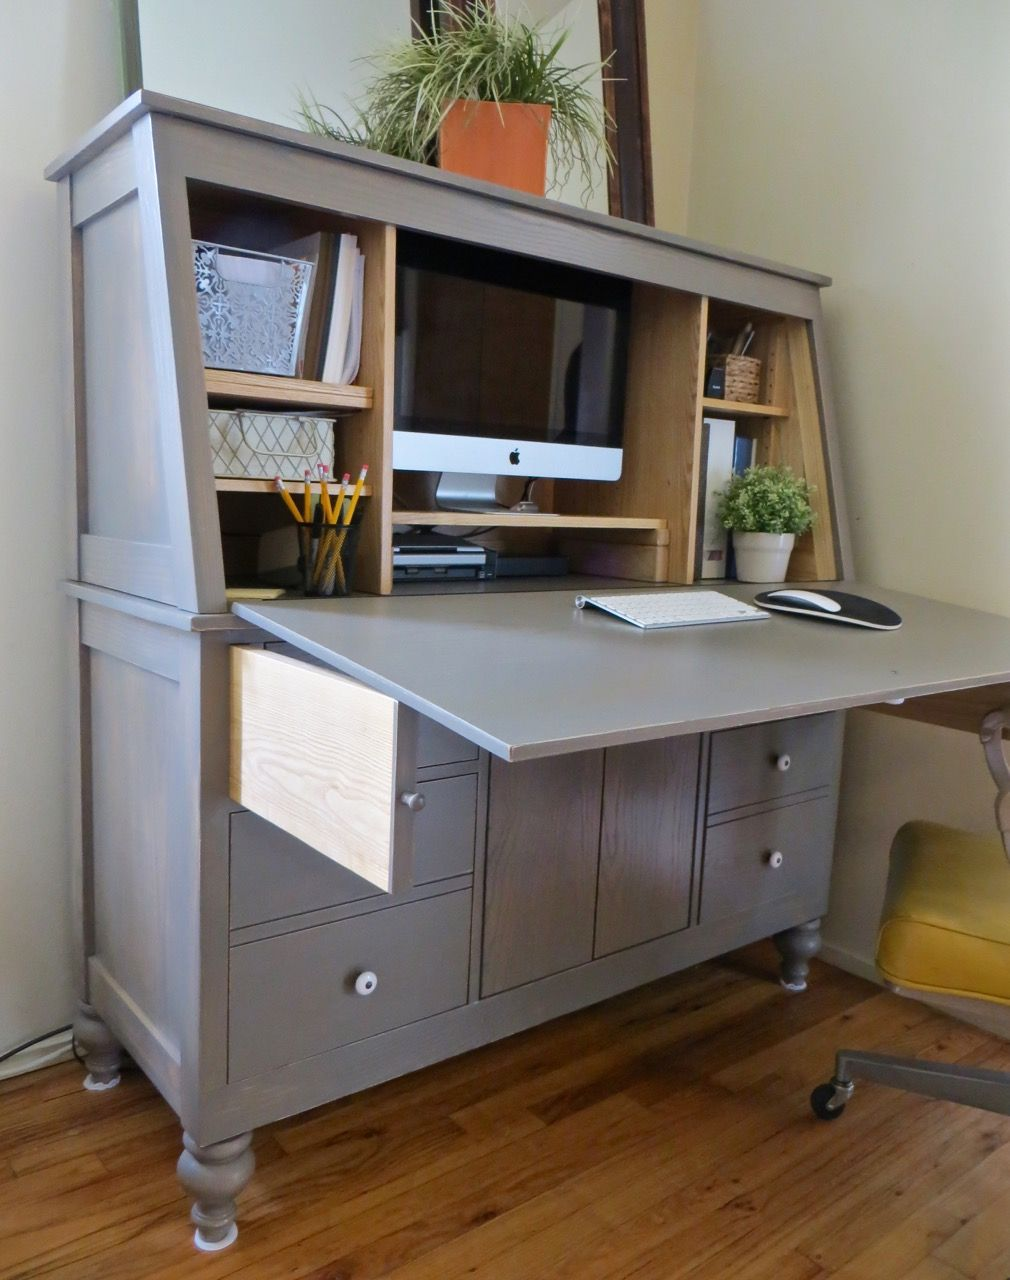 Drop down door hutch desk do it yourself home projects from ana drop down door hutch desk do it yourself home projects from ana white solutioingenieria Image collections